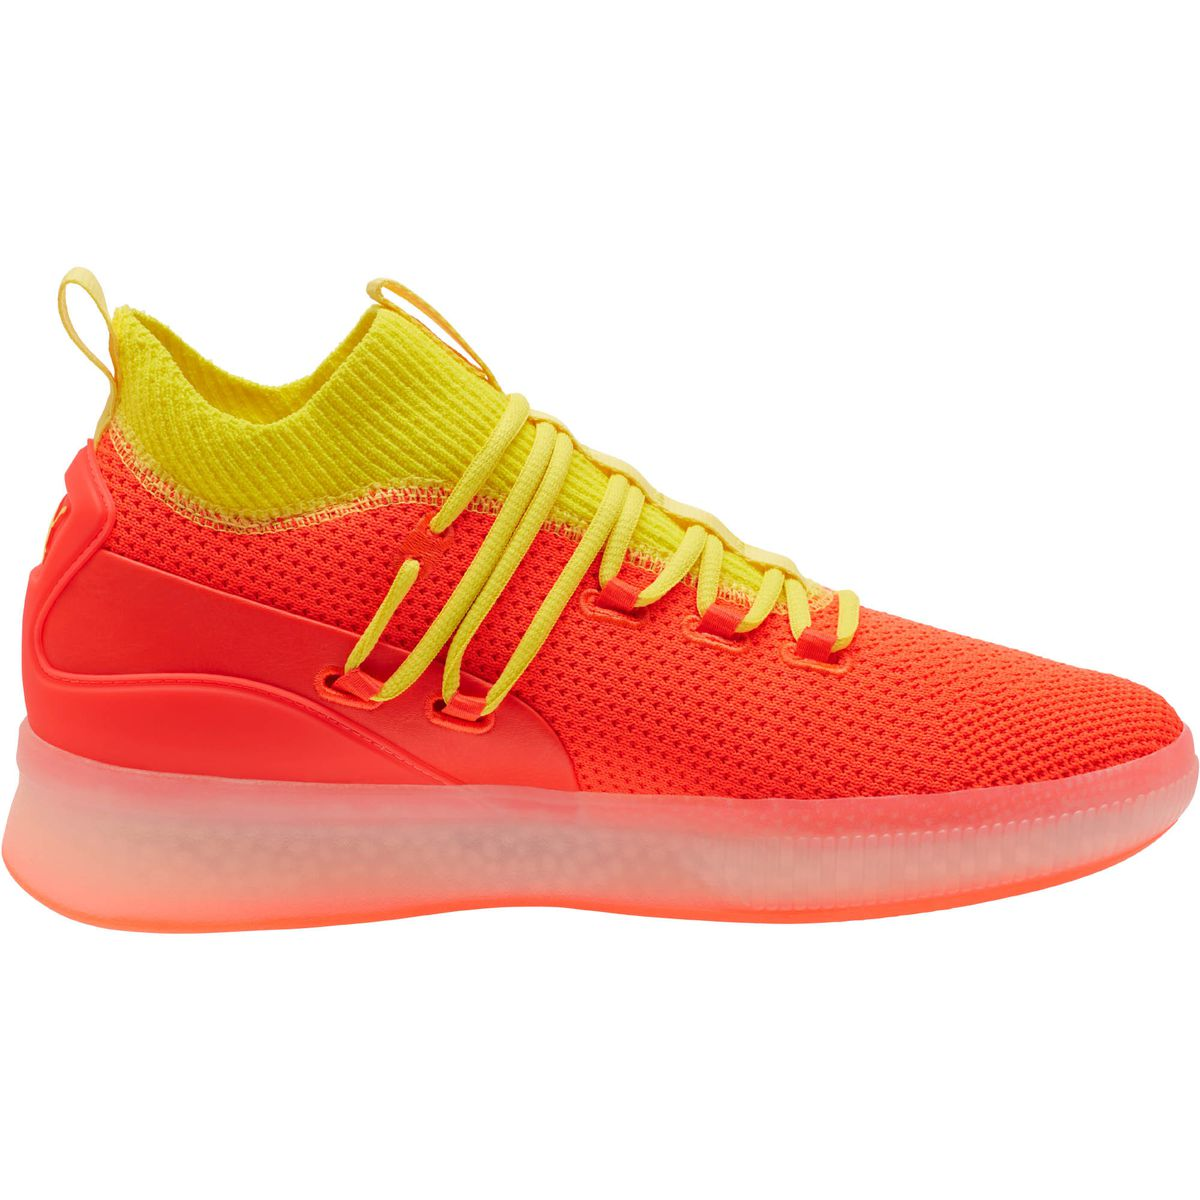 innovative design 90825 07881 Puma's Clyde Court Disrupt basketball shoe drops just in ...